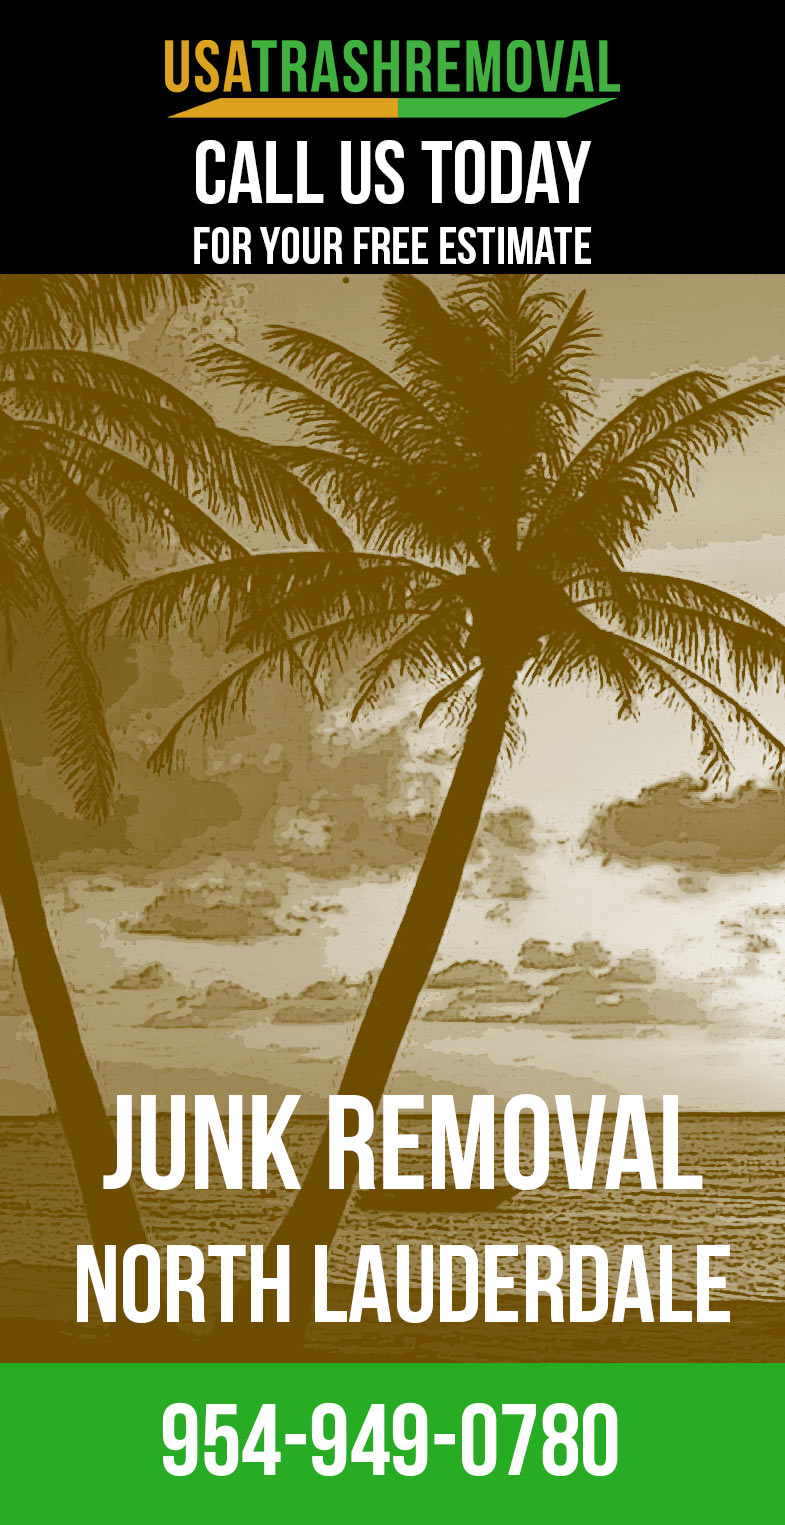 Junk Removal North Lauderdale